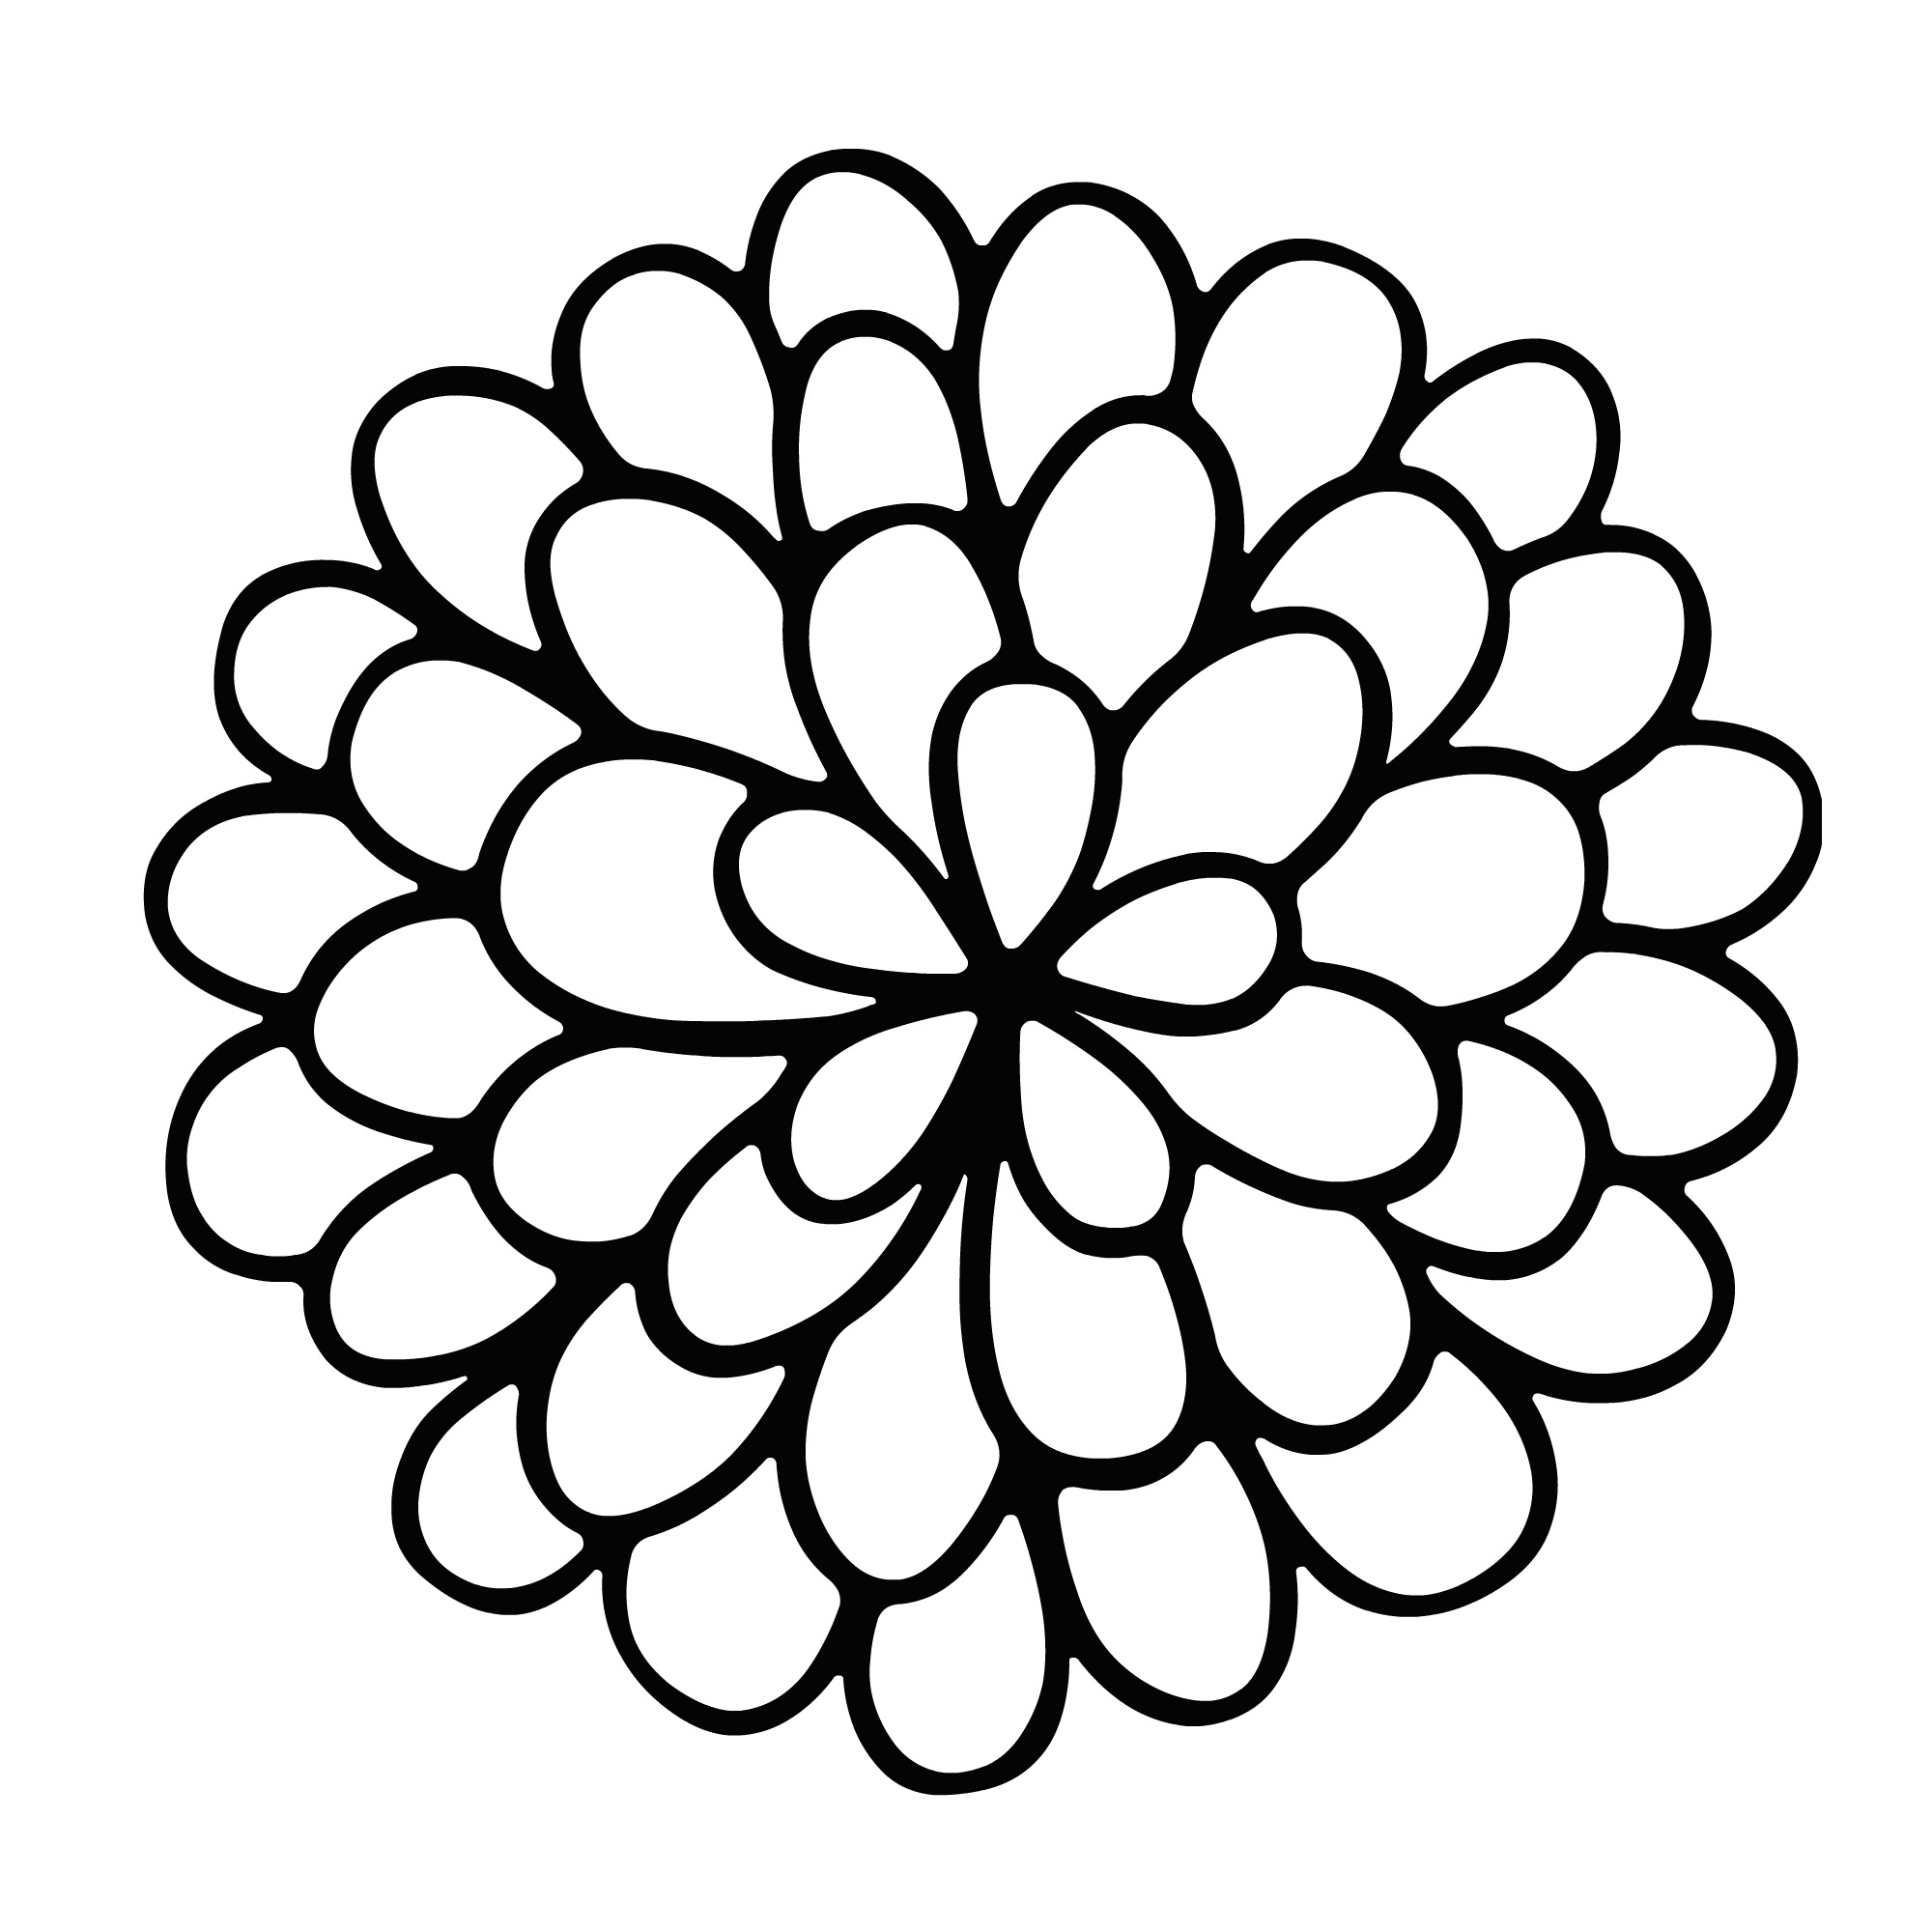 2000x2000 Forget Me Not Flowers Sketch Coloring Page View Larger Image Clipgoo